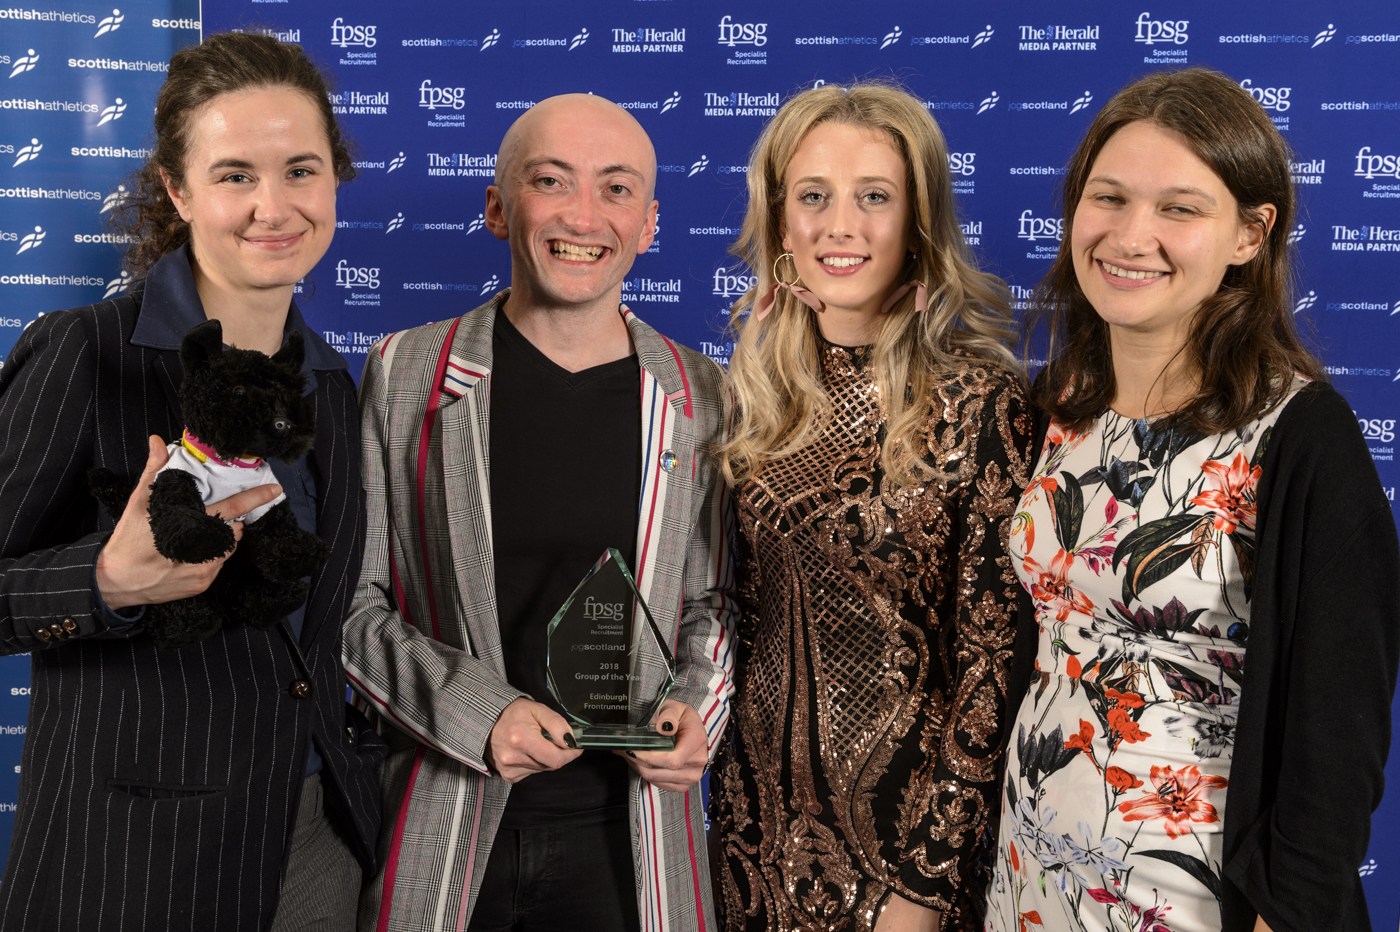 Three members of Edinburgh Frontrunners, with athlete Jemma Reekie, all in smart suits and dresses, holding their award